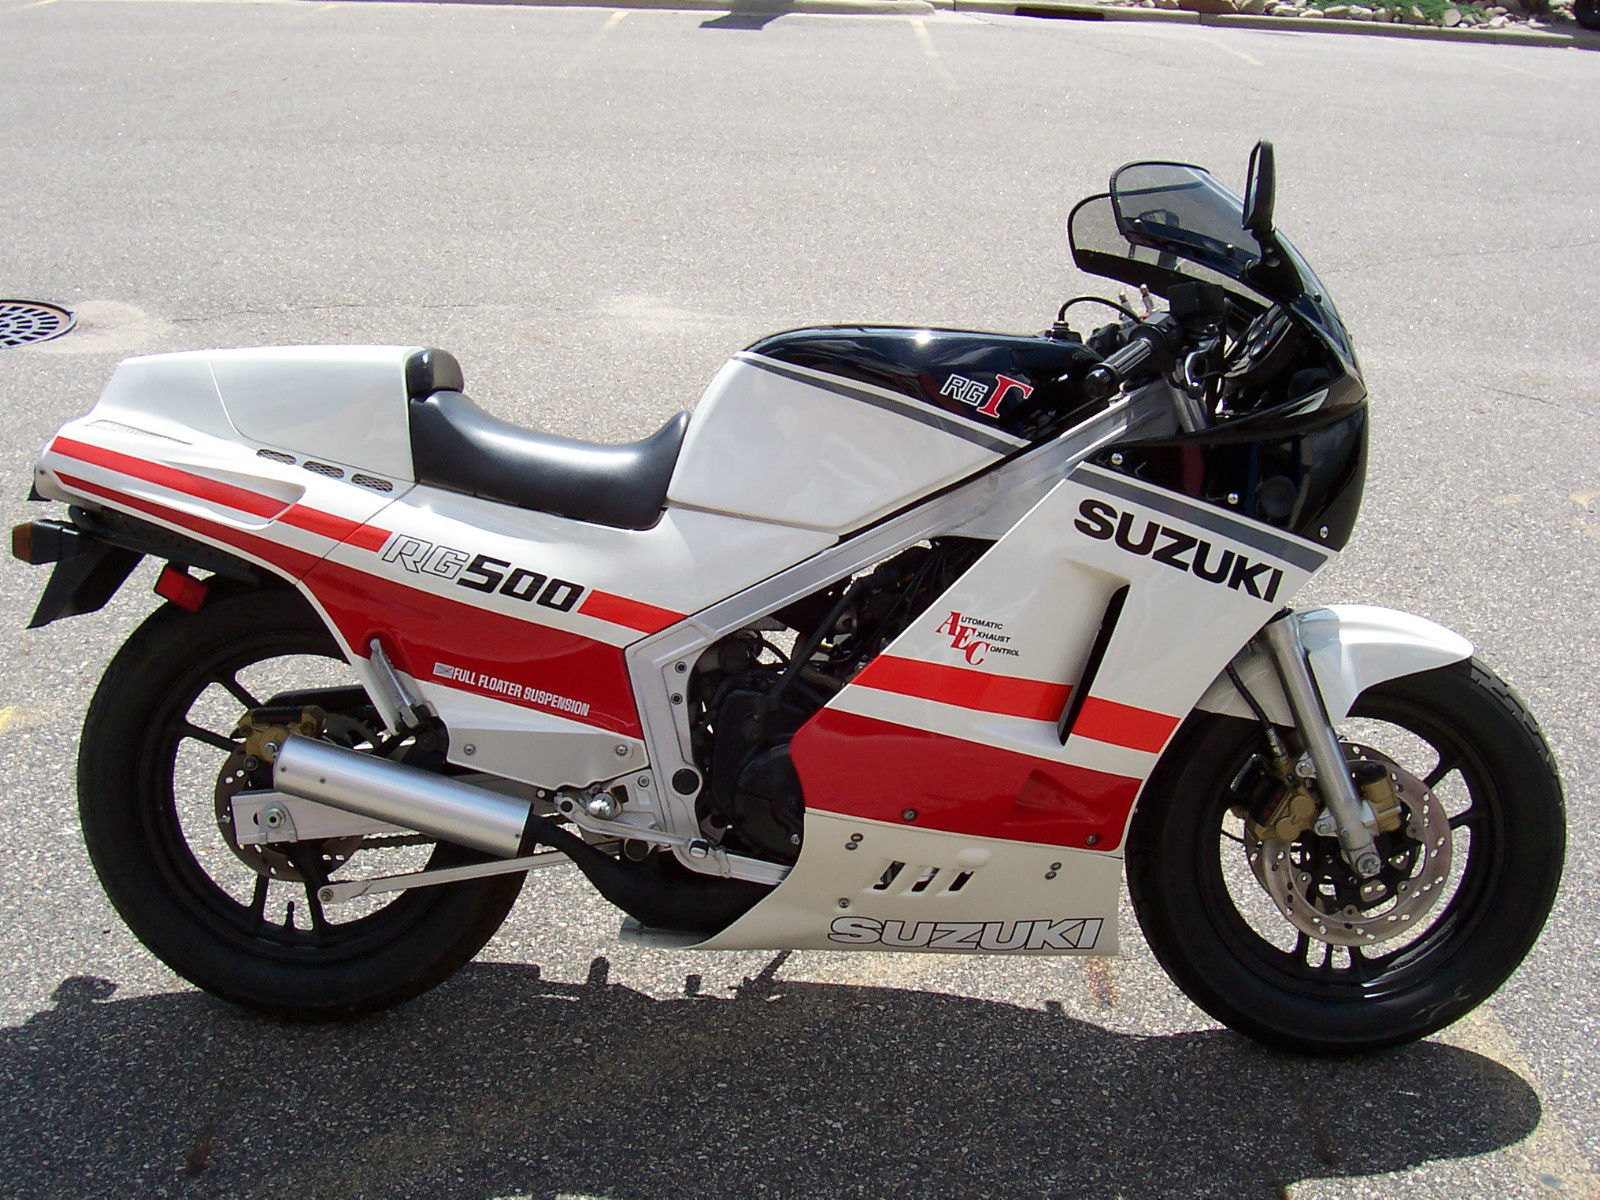 30 miles 1986 suzuki rg500 gamma bike urious. Black Bedroom Furniture Sets. Home Design Ideas